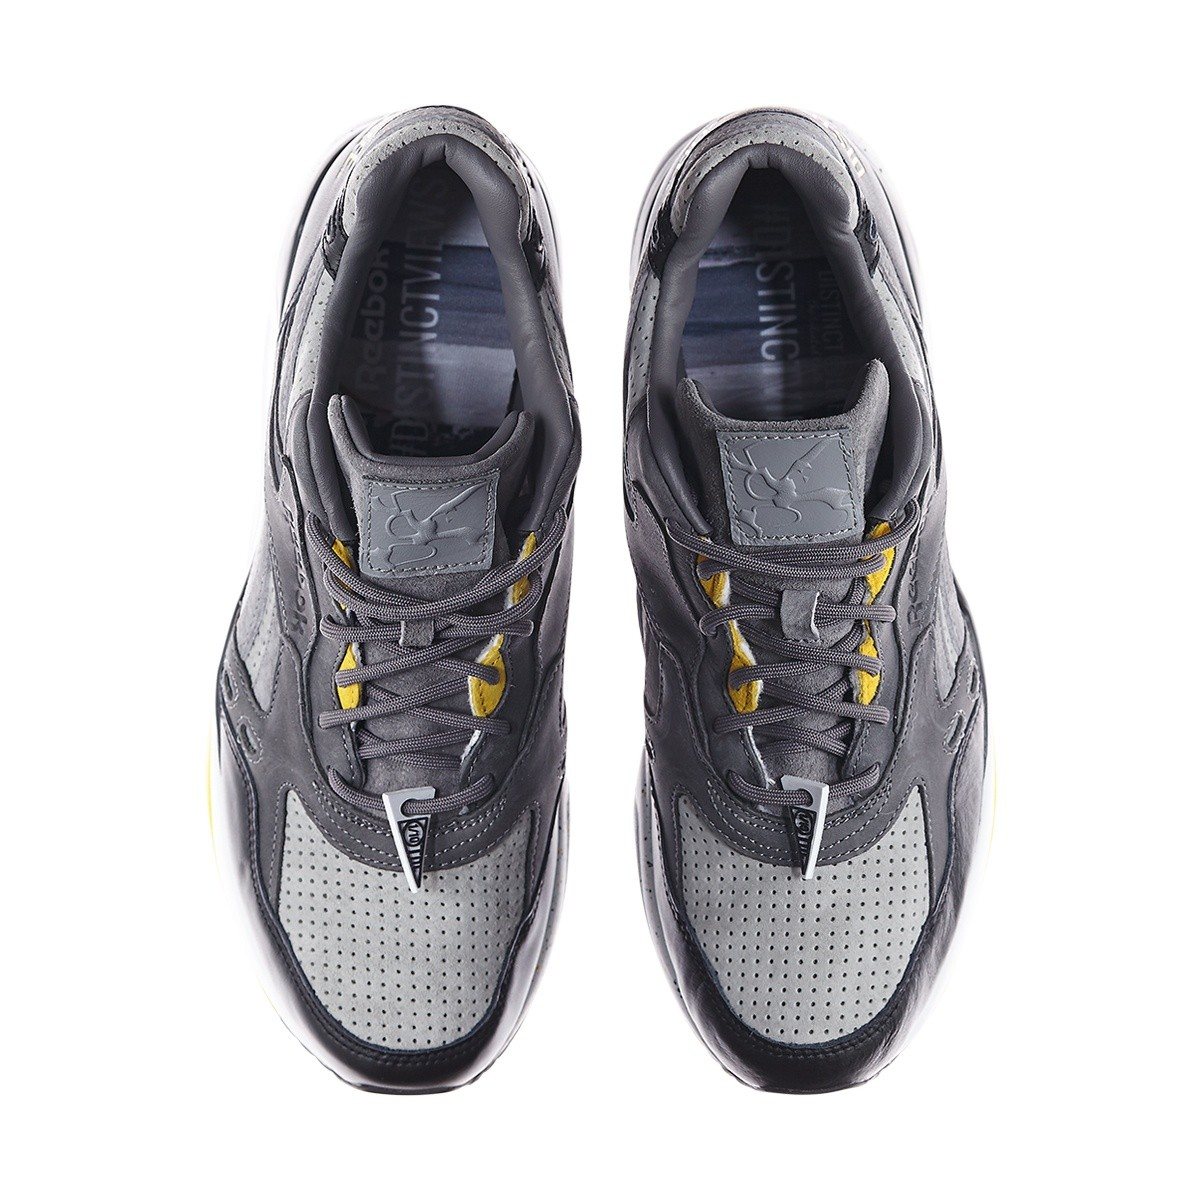 nike shox nz premium chaussures de course - Reebok Classic Suede And Mesh Trainers in Black for Men - Save 43 ...